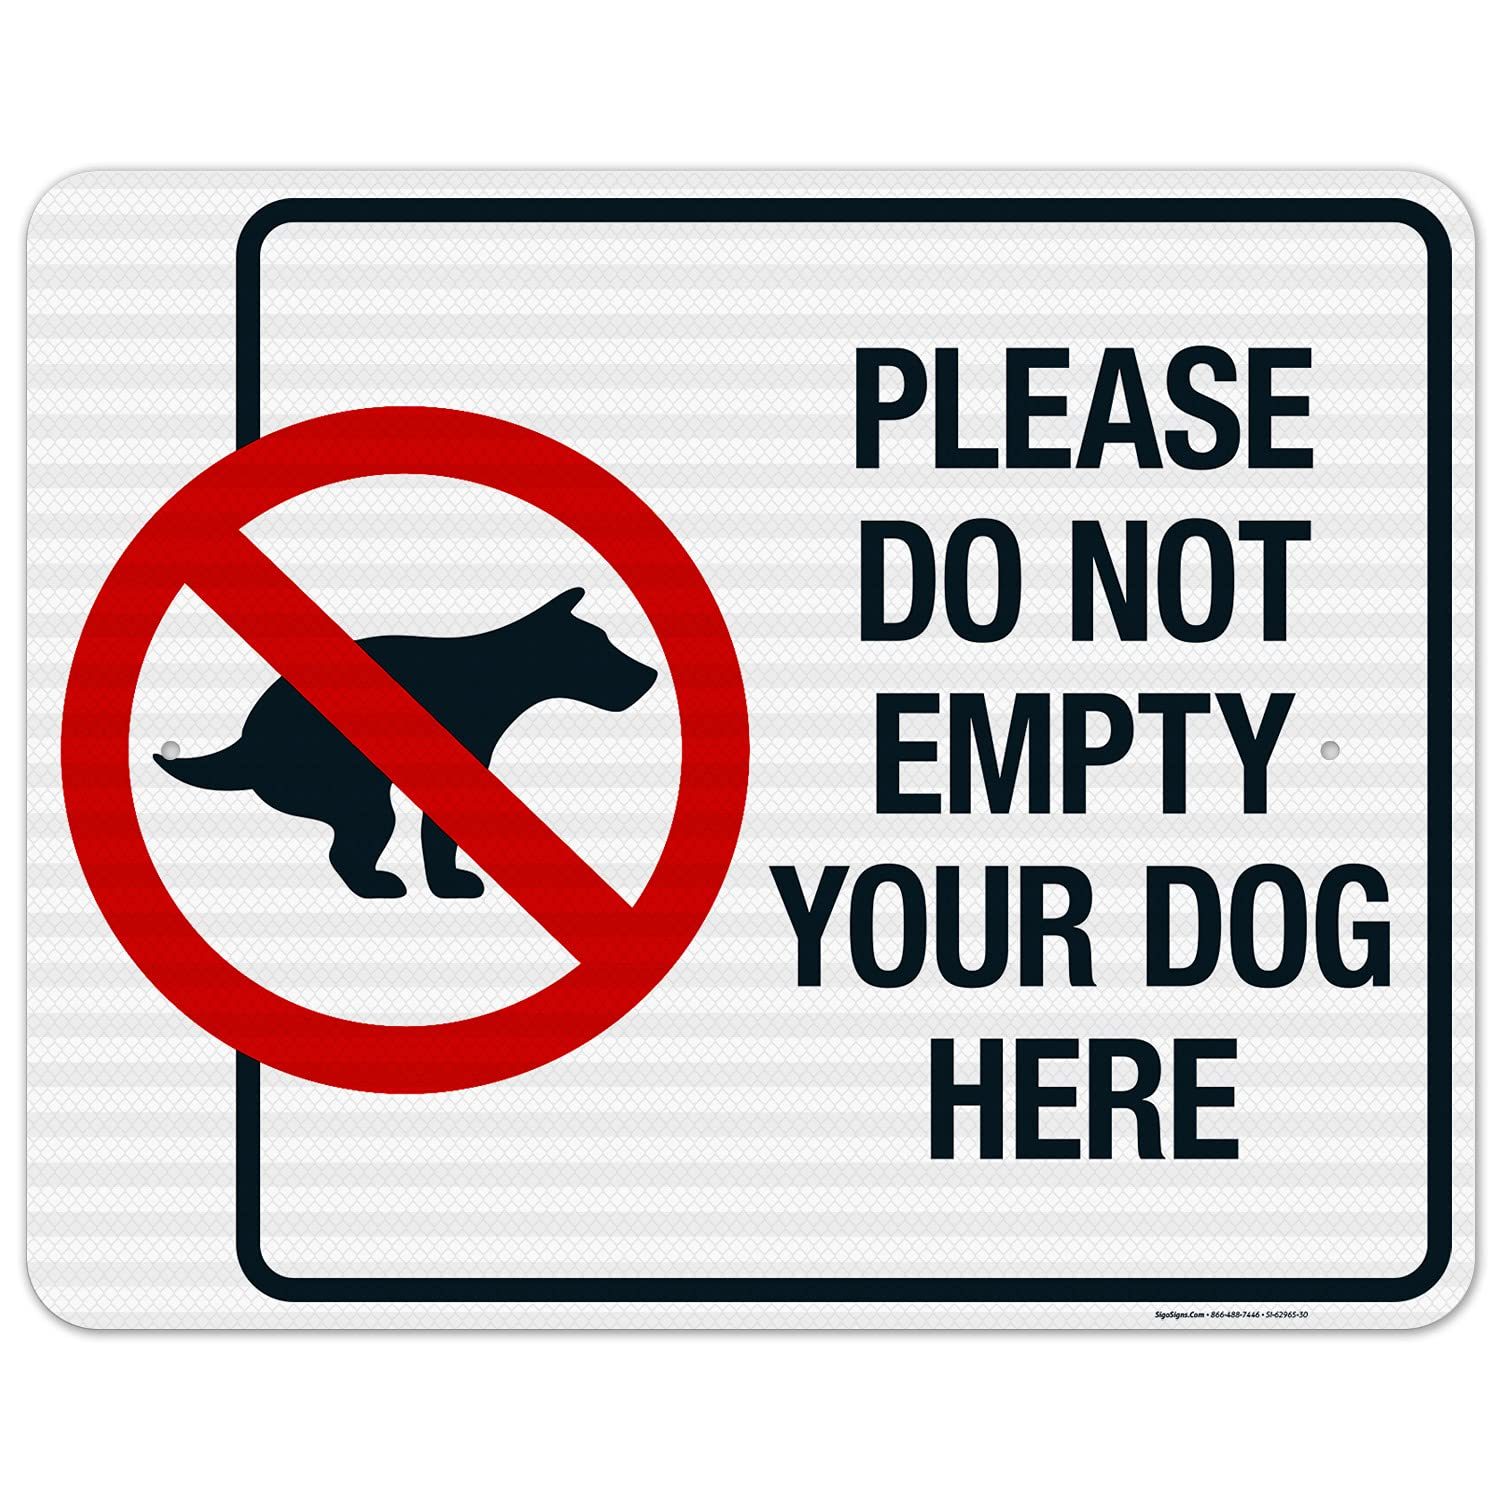 Ranking integrated 1st place All items in the store Please Do Not Empty Your Dog Prohibited Sign with Here Graphic